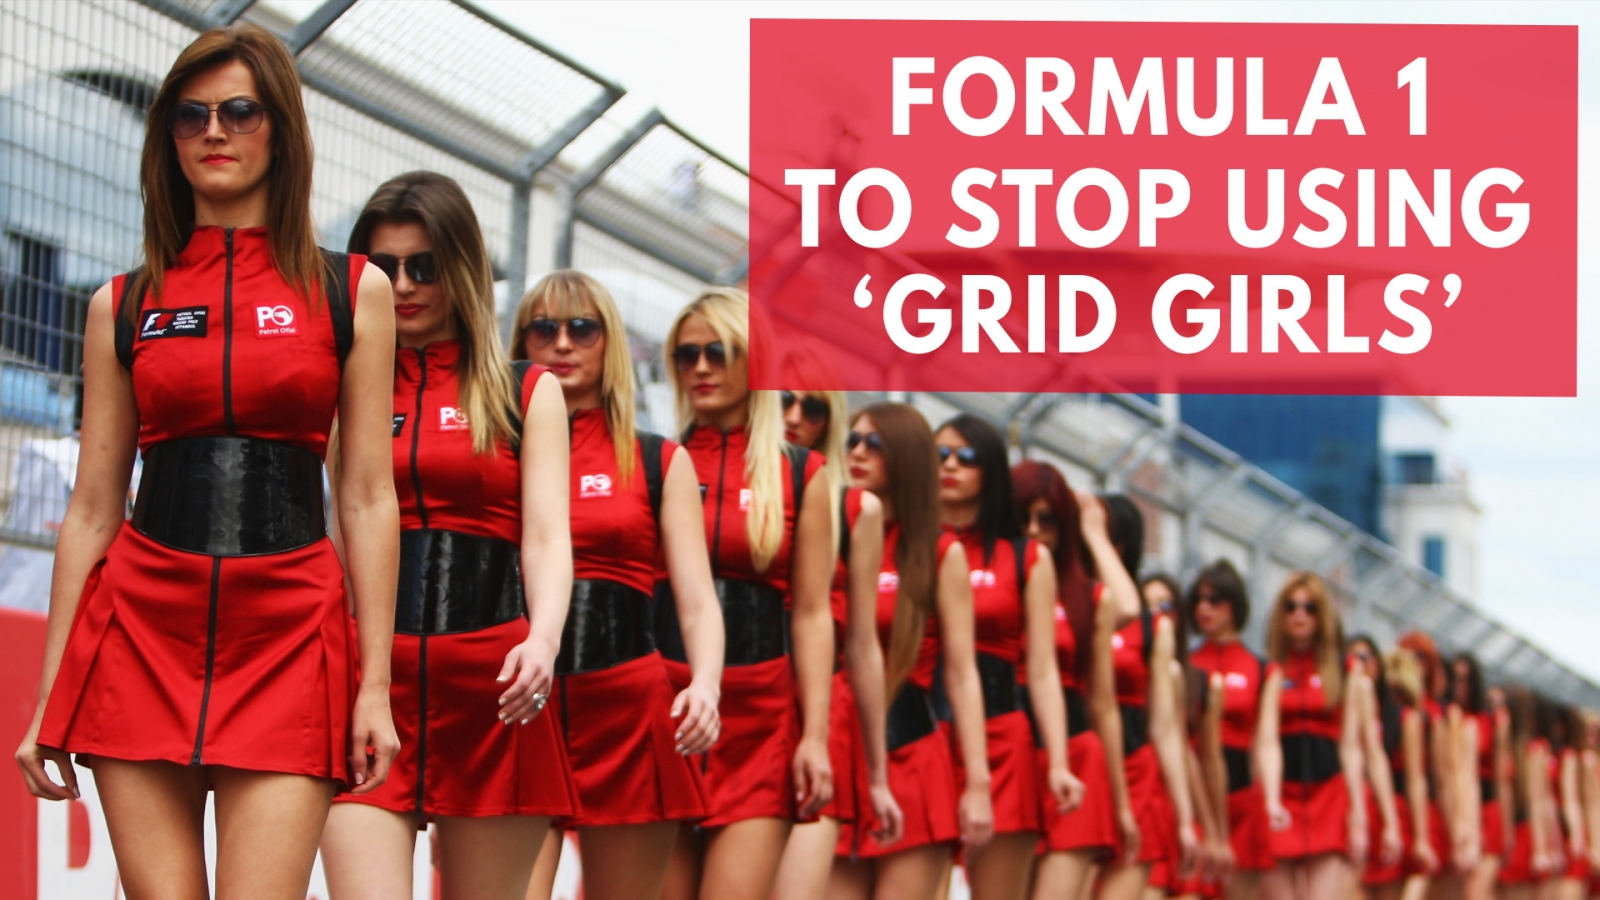 formula-1-to-stop-using-grid-girls-in-new-season